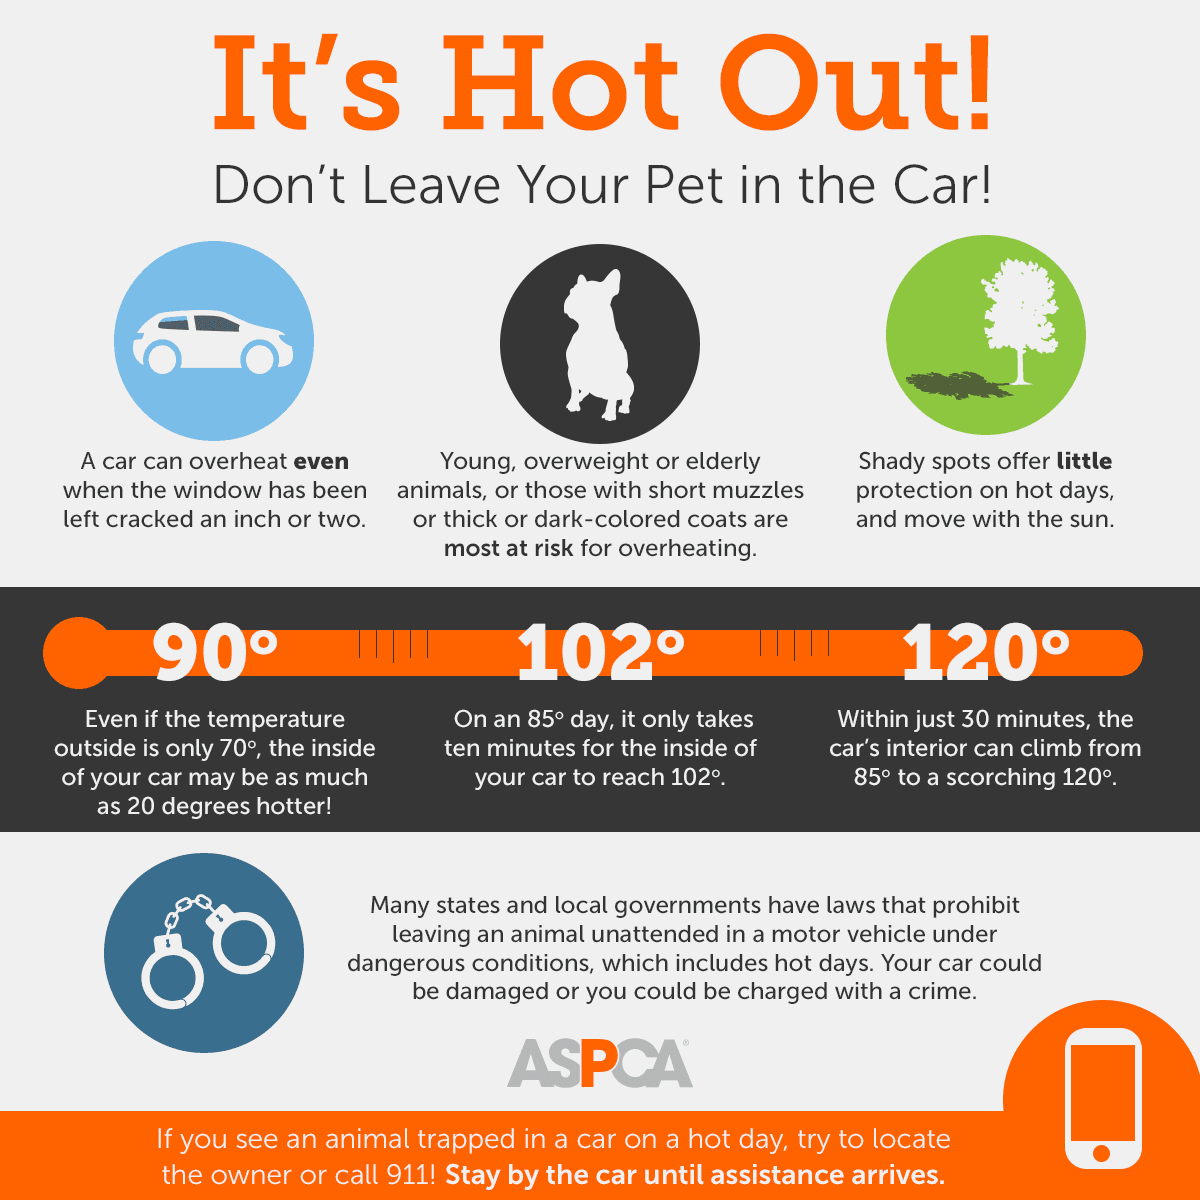 Do not leave pets in hot cars